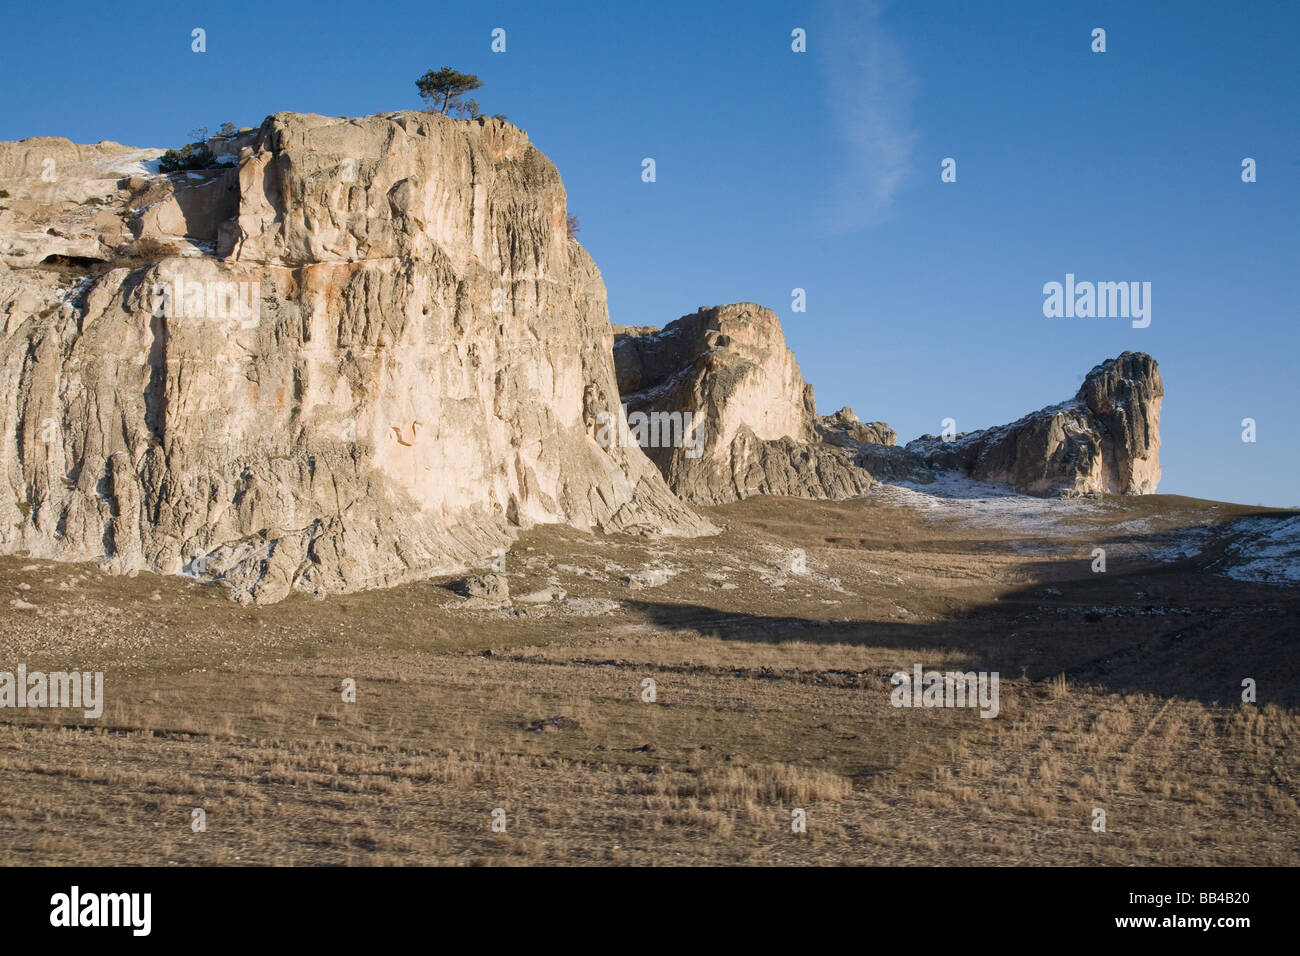 Rugged landscape in central Turkey. - Stock Image